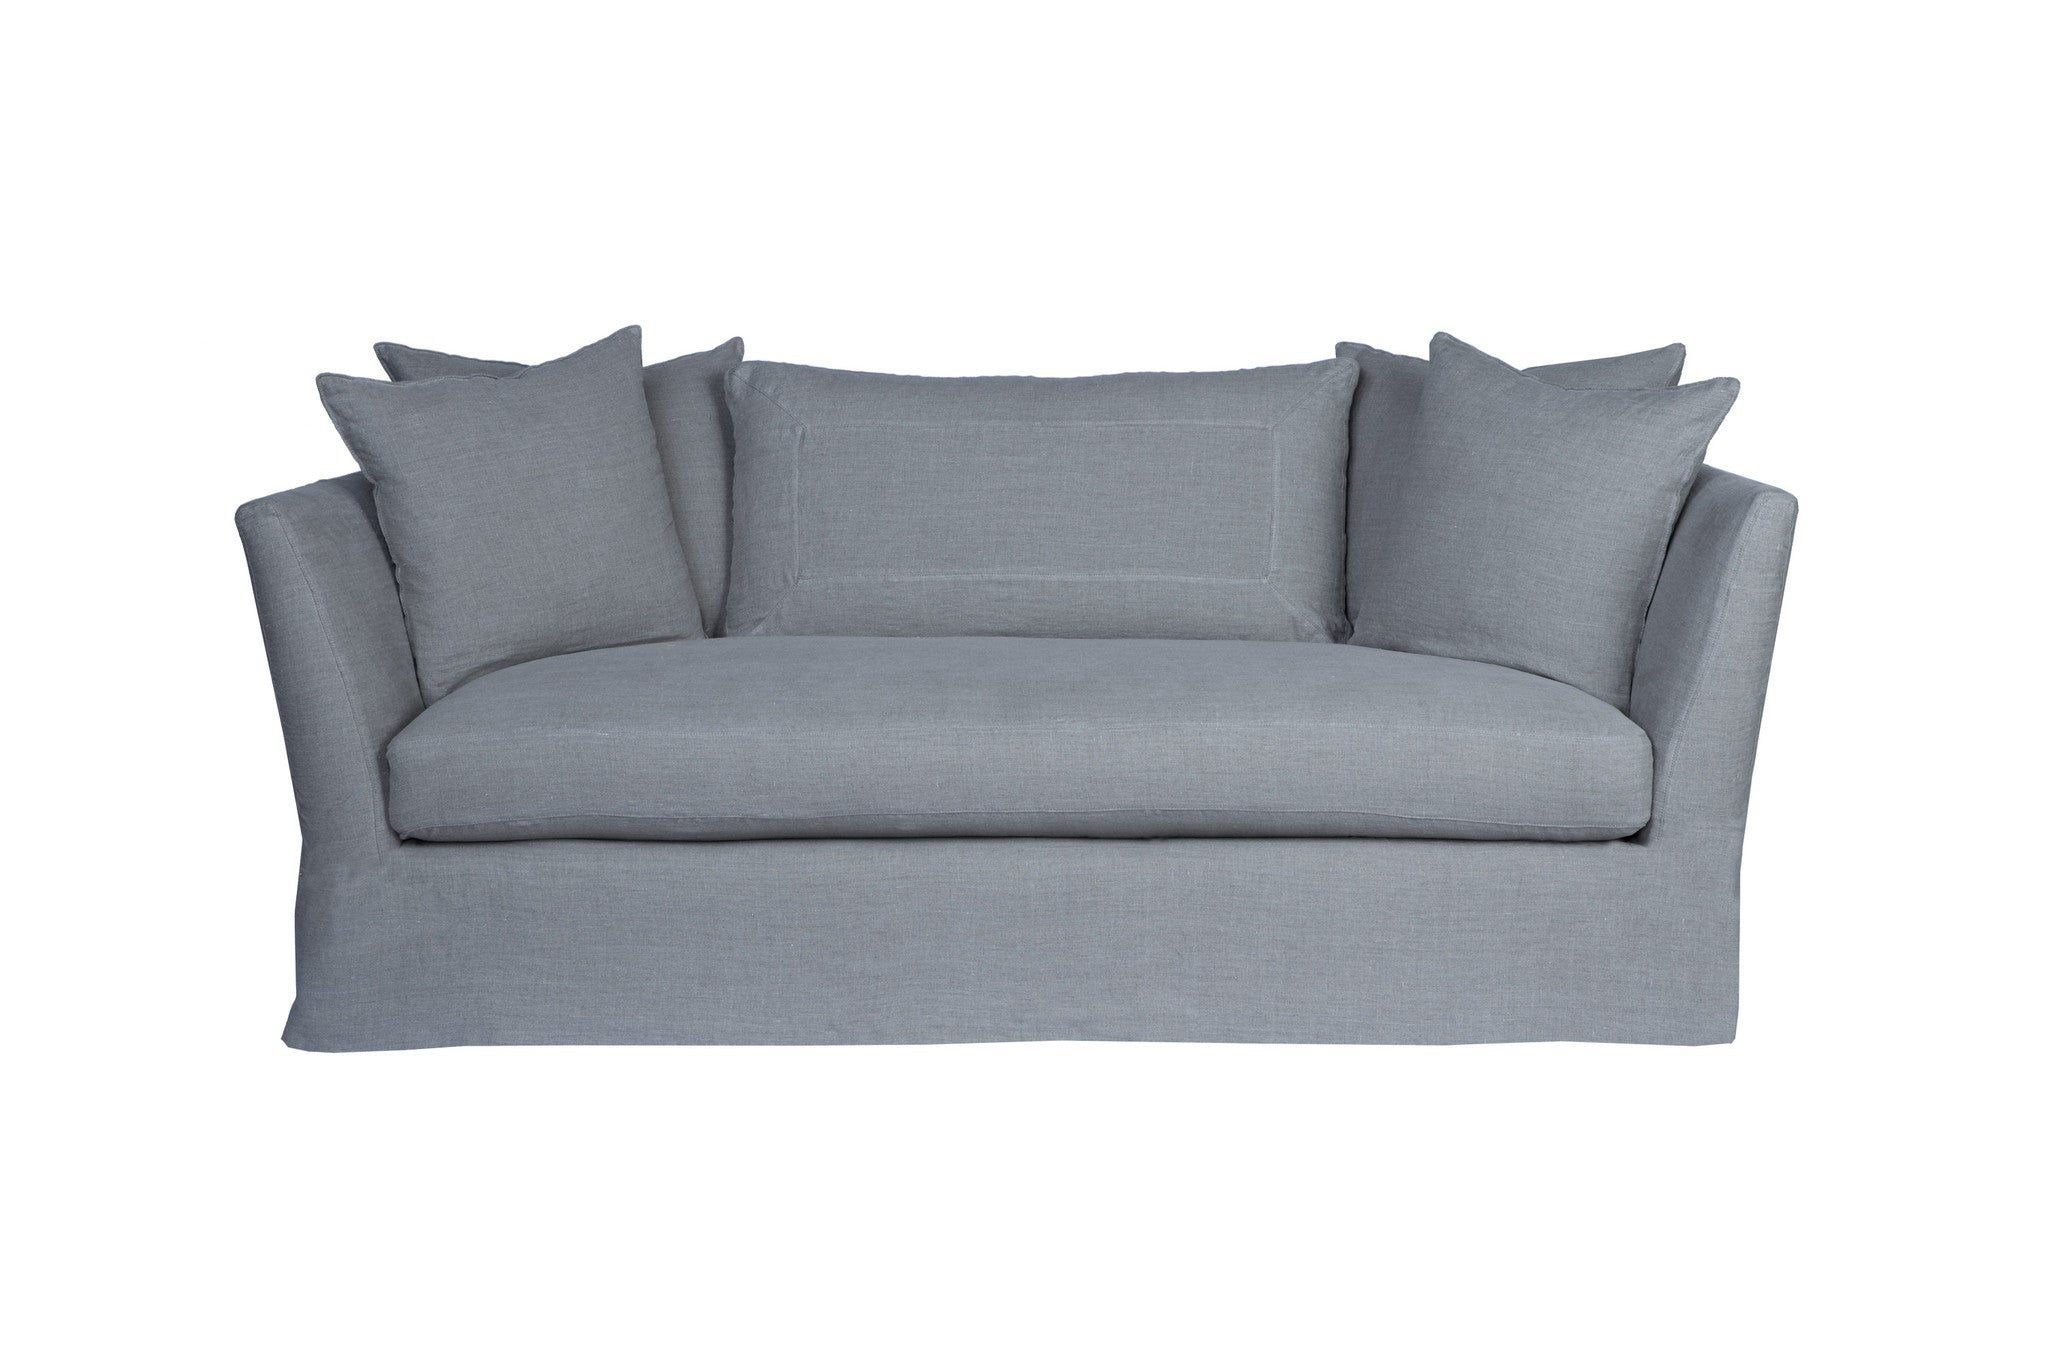 Seda sofa 84 inches manor fine wares curious goods for Sofa 84 inch